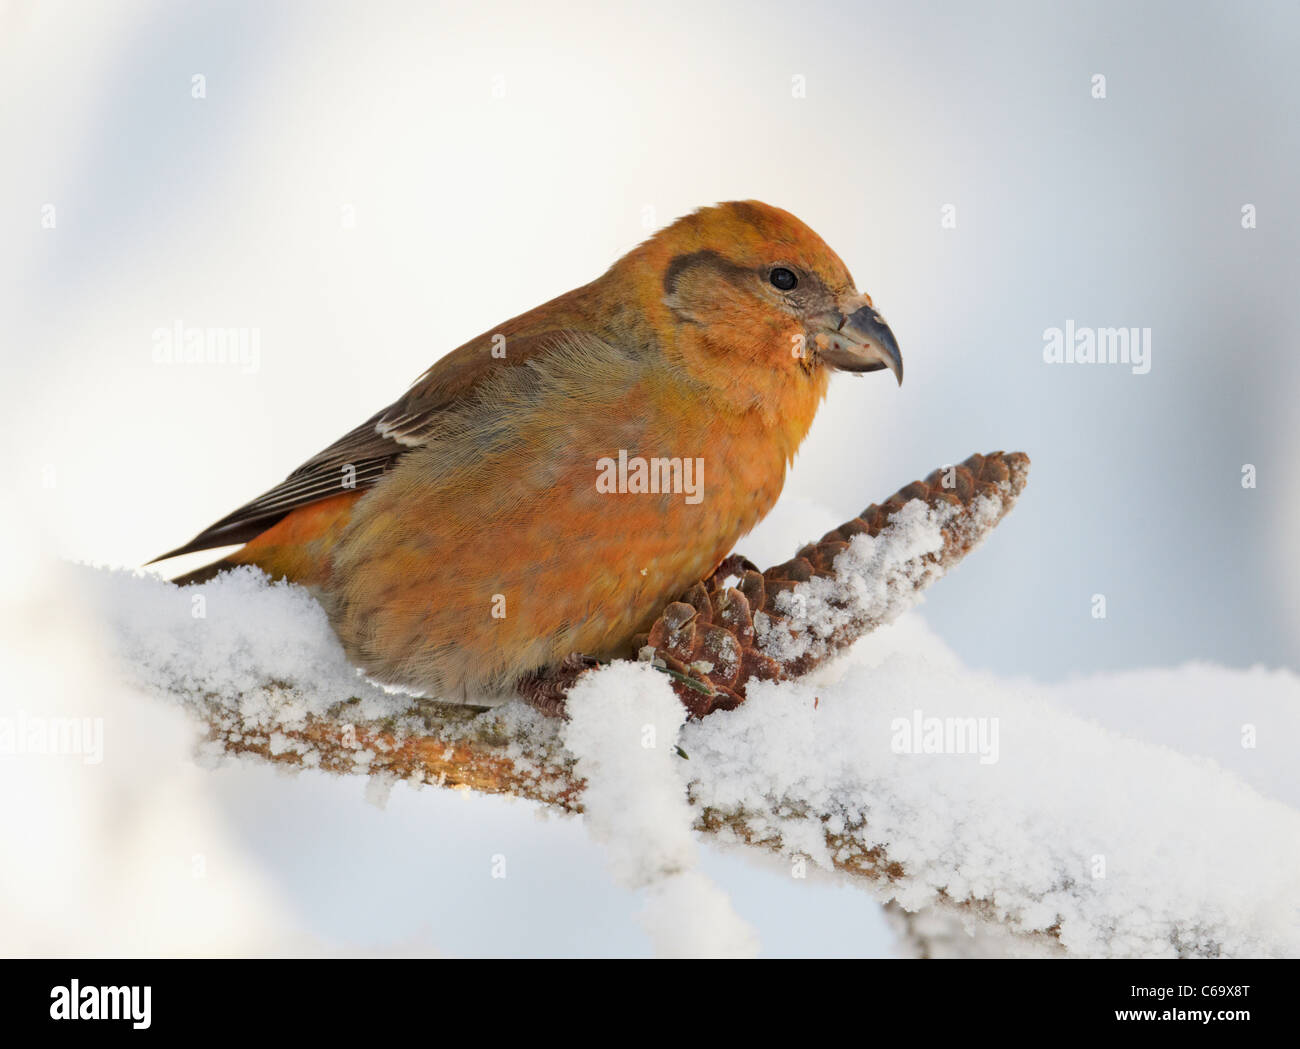 Common Crossbill, Red Crossbill (Loxia curvirostra). Male eating seeds from a spruce cone. - Stock Image